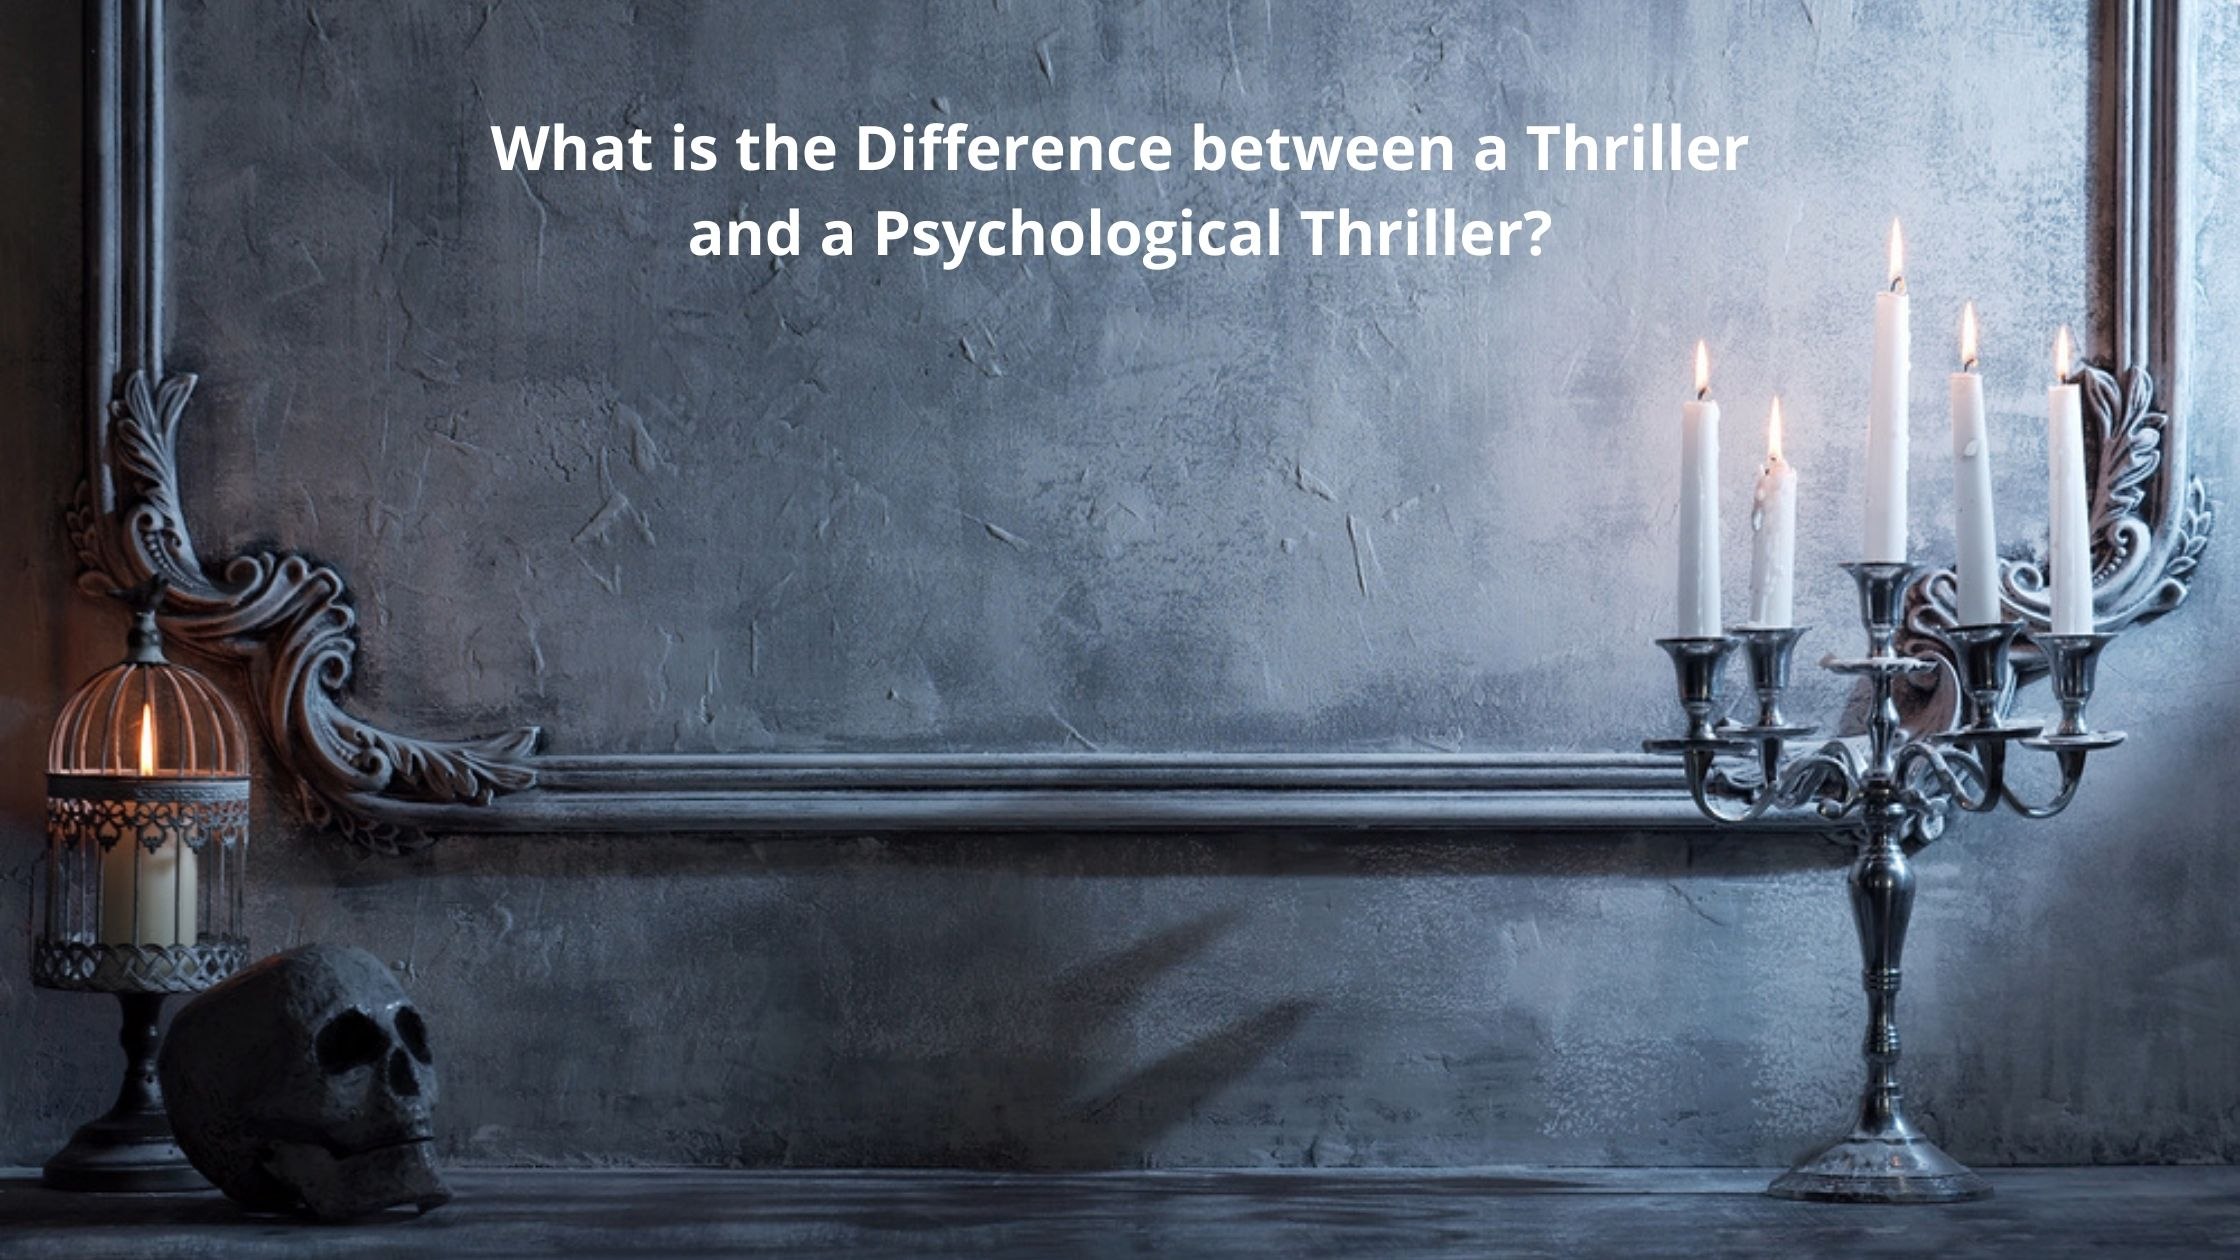 What is the difference between Thriller & Pshycological Thriller